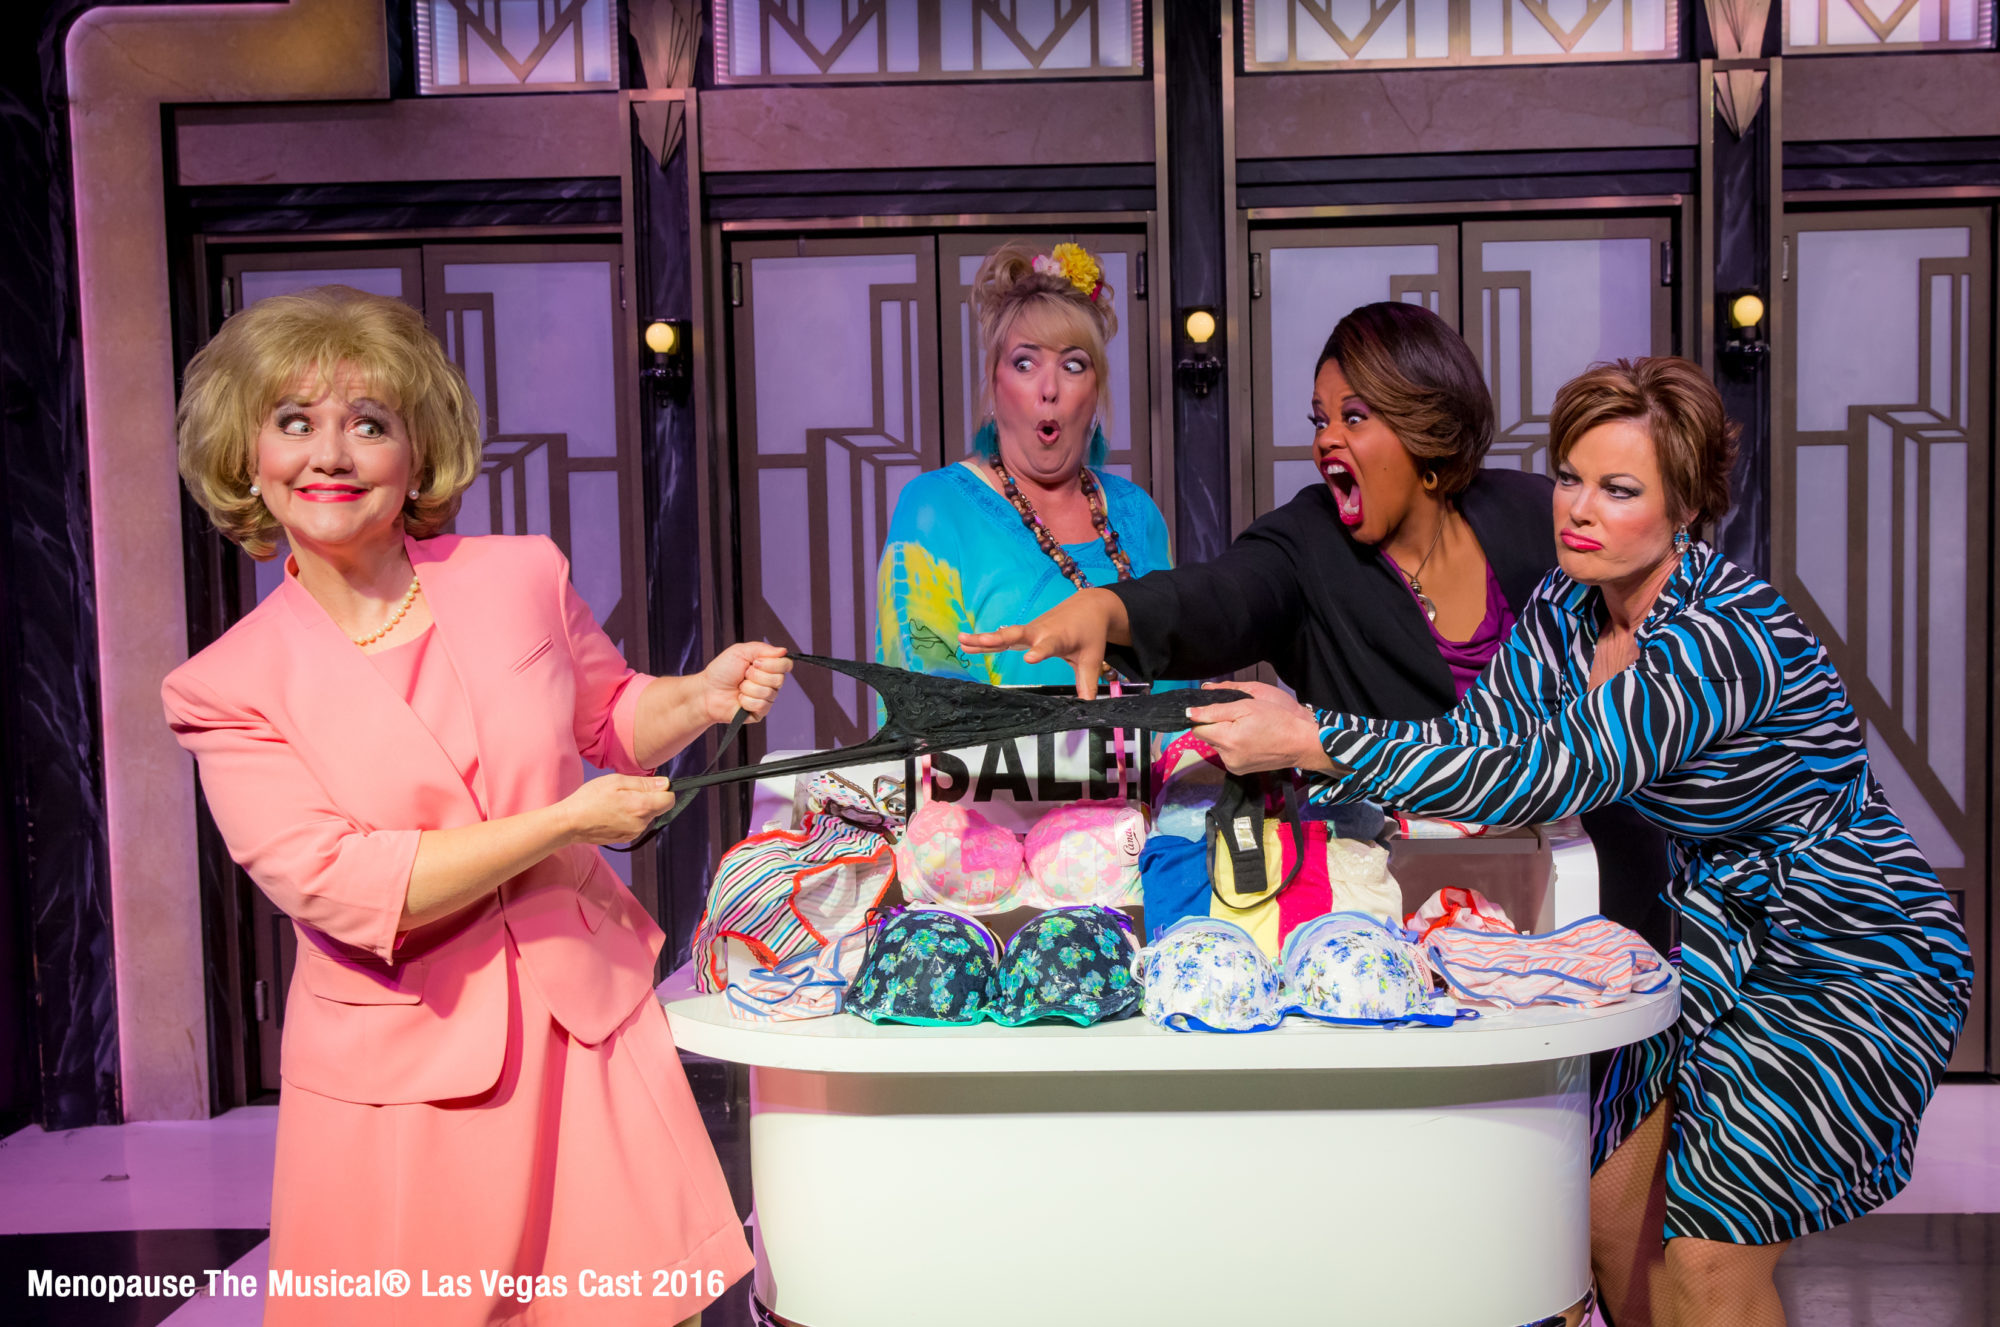 """Menopause The Musical"" Actress Was Nowhere Near Menopause When Show Began"